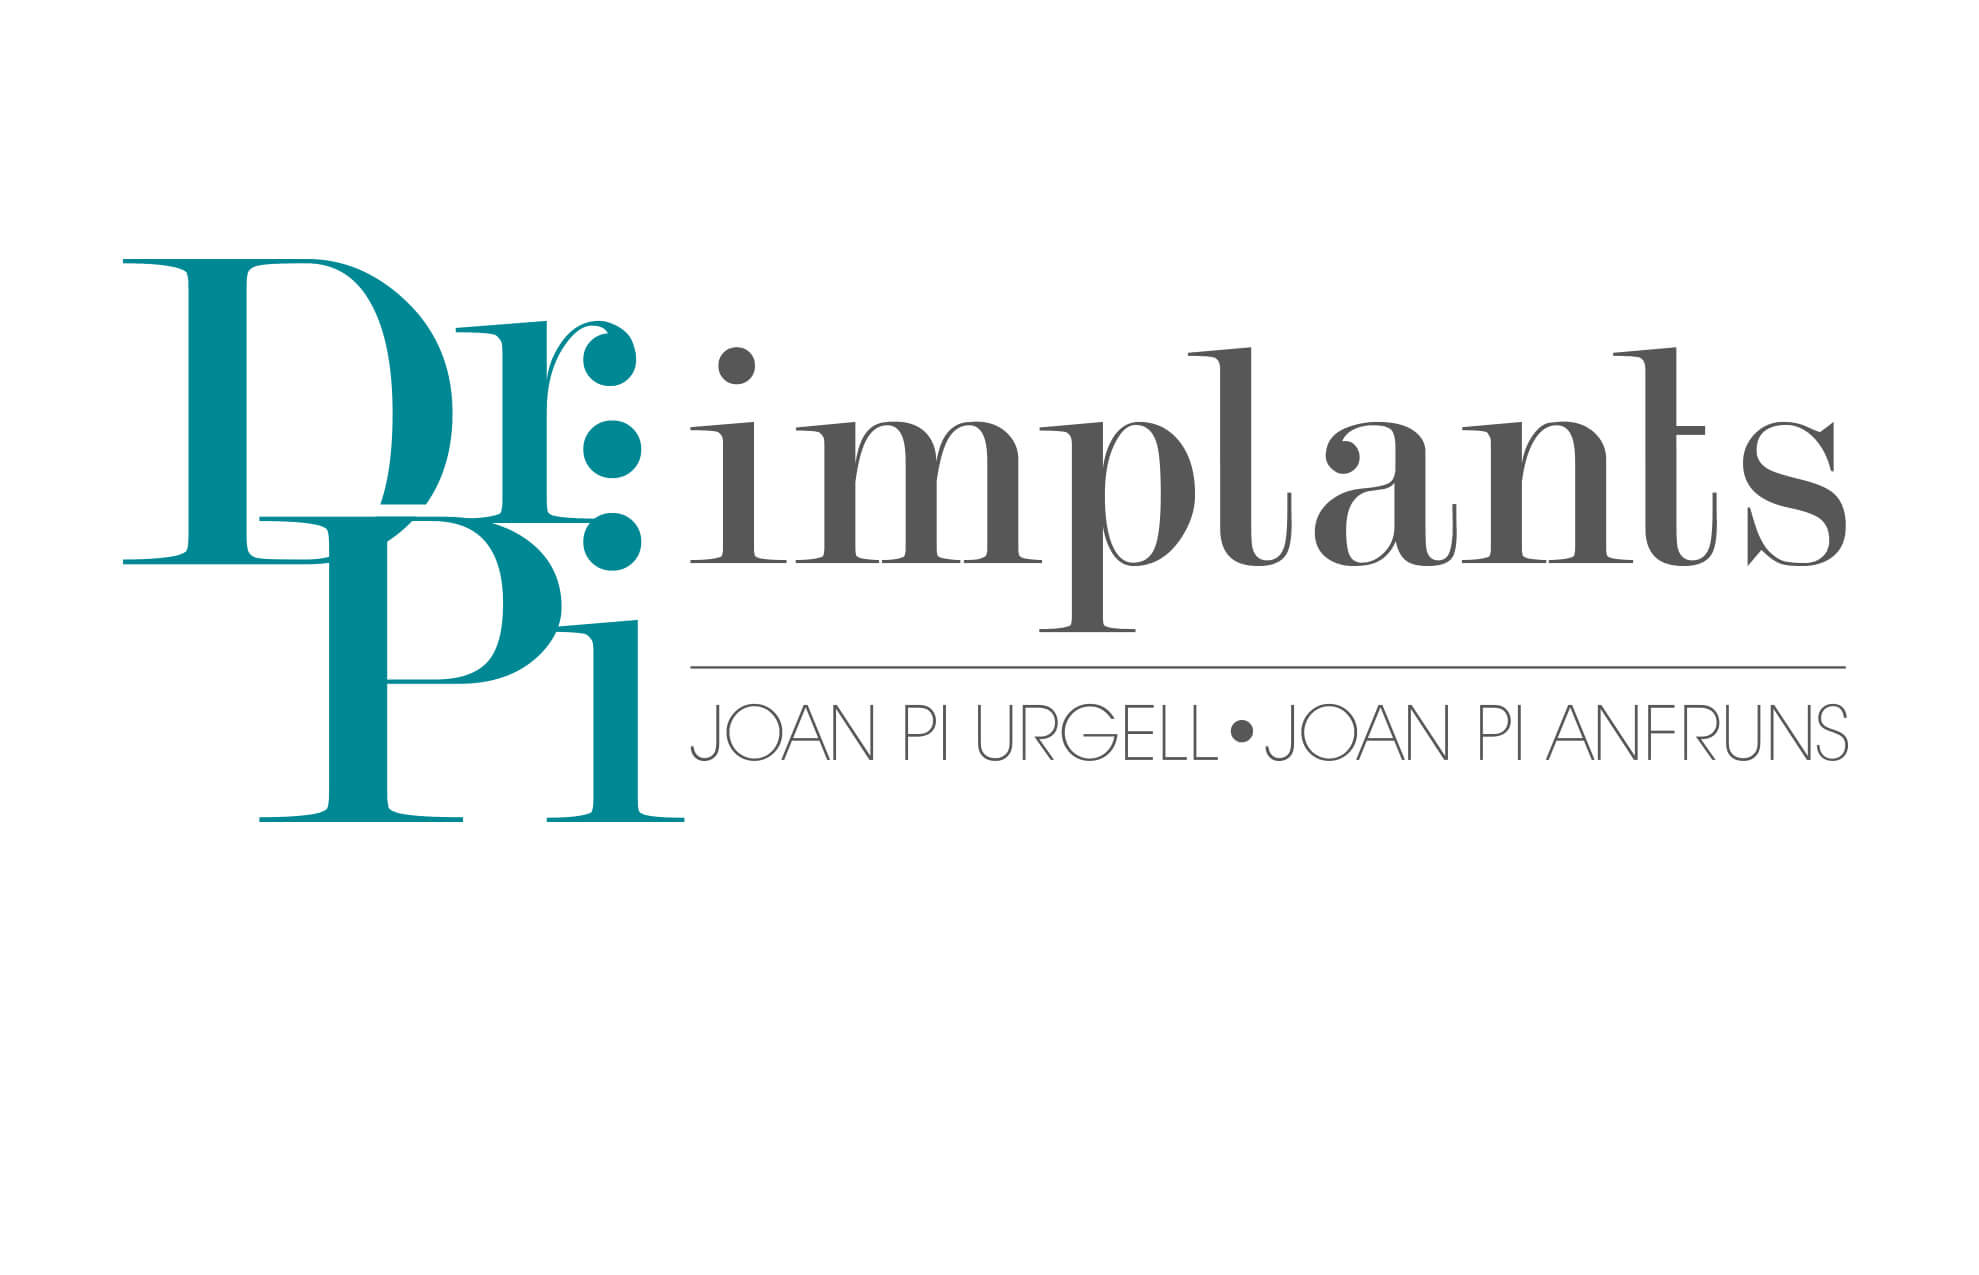 Dr Pi logotipo restyling branding1 - Restyling de marca corporativa